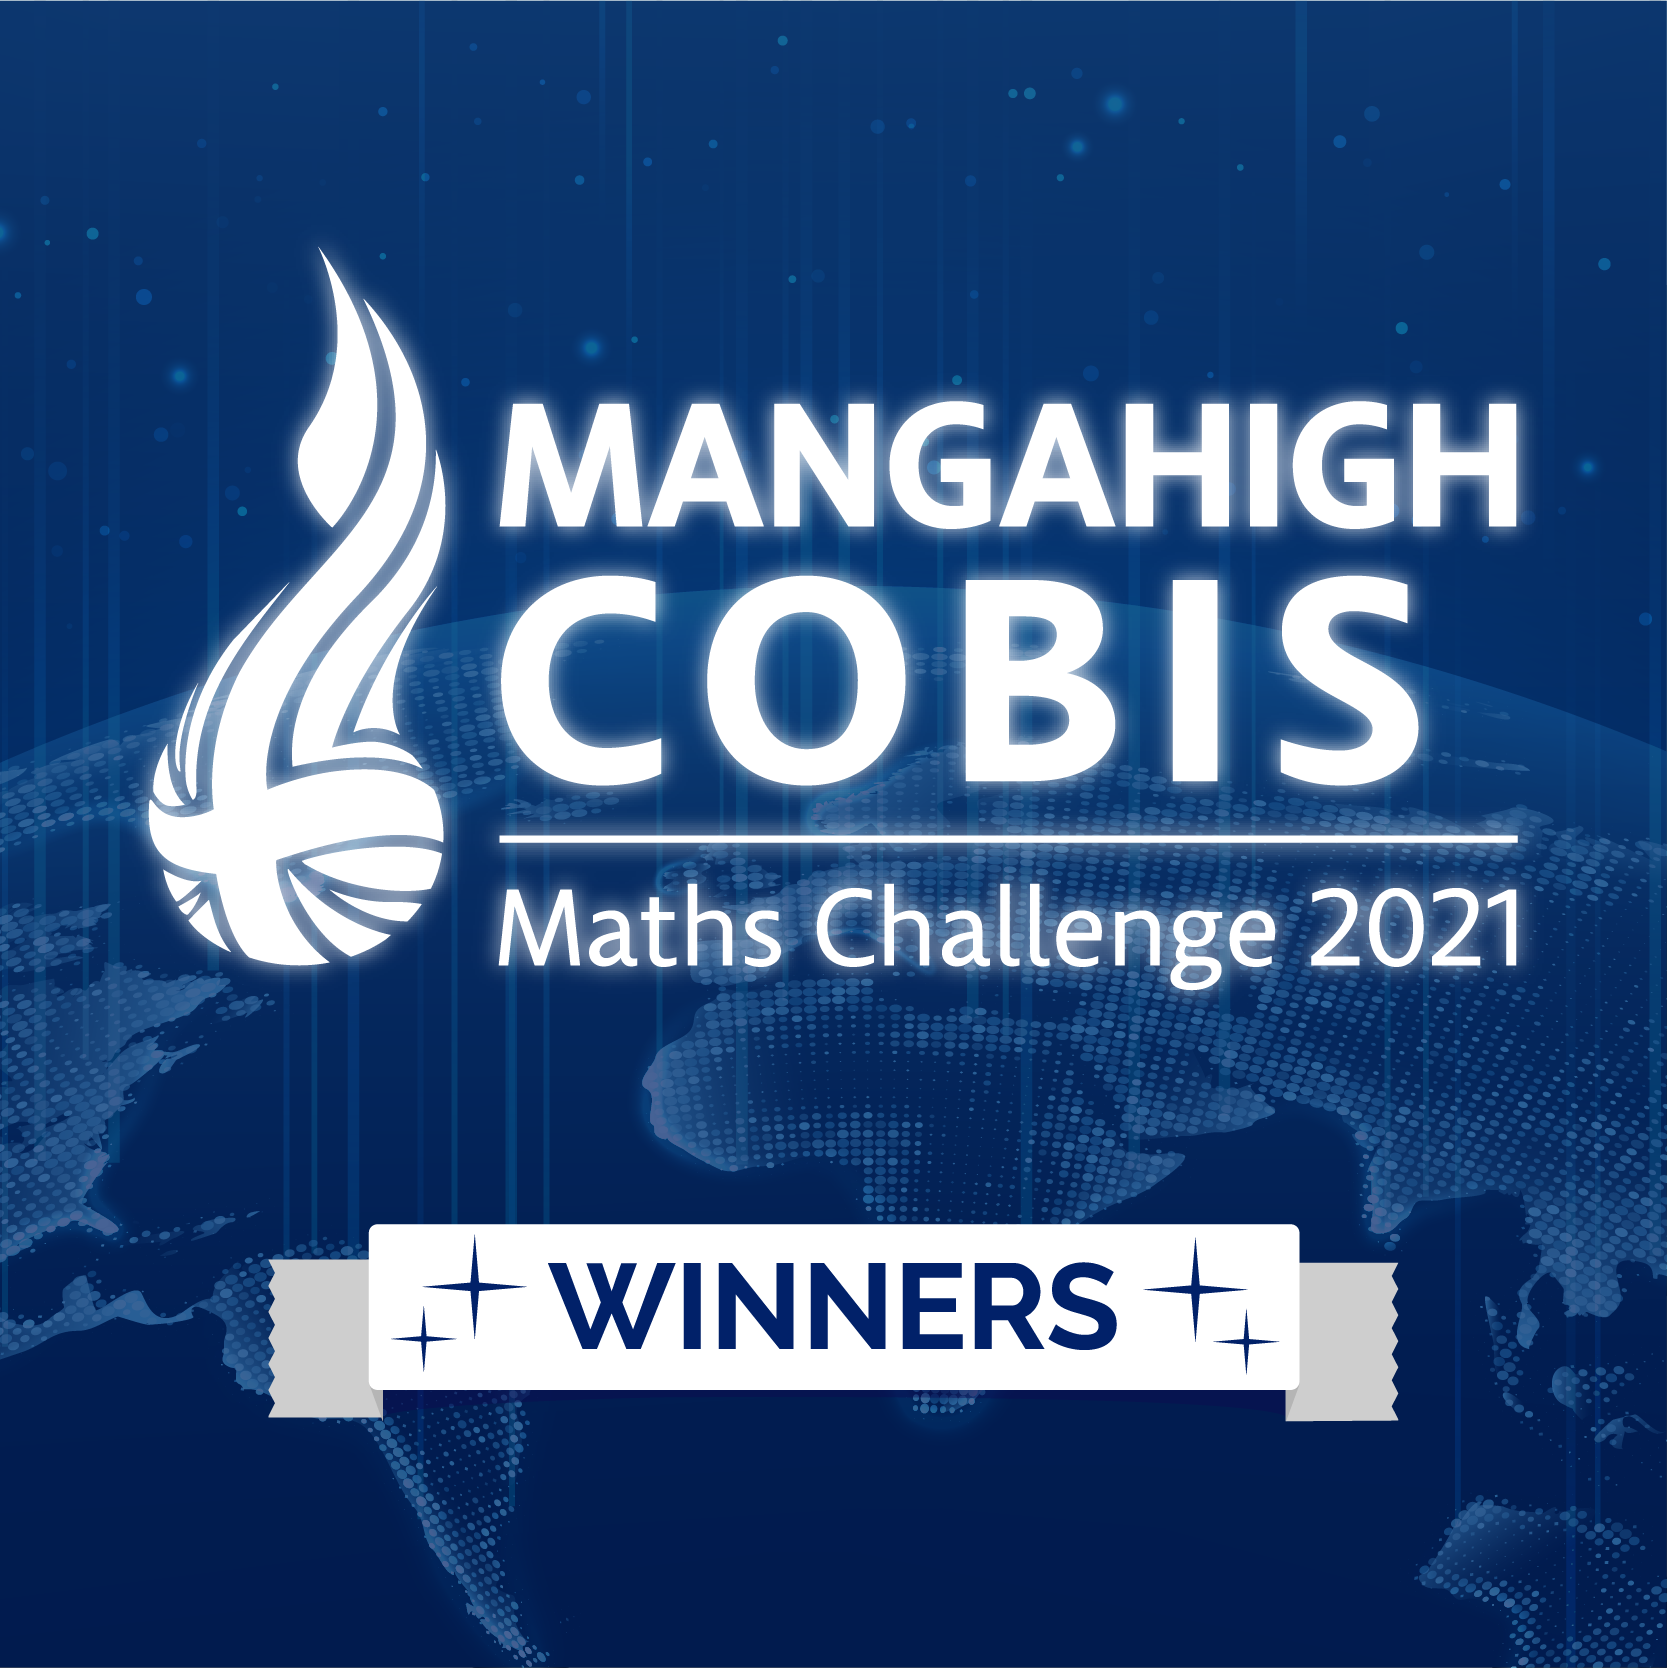 The Champions of the Mangahigh COBIS Maths Challenge!